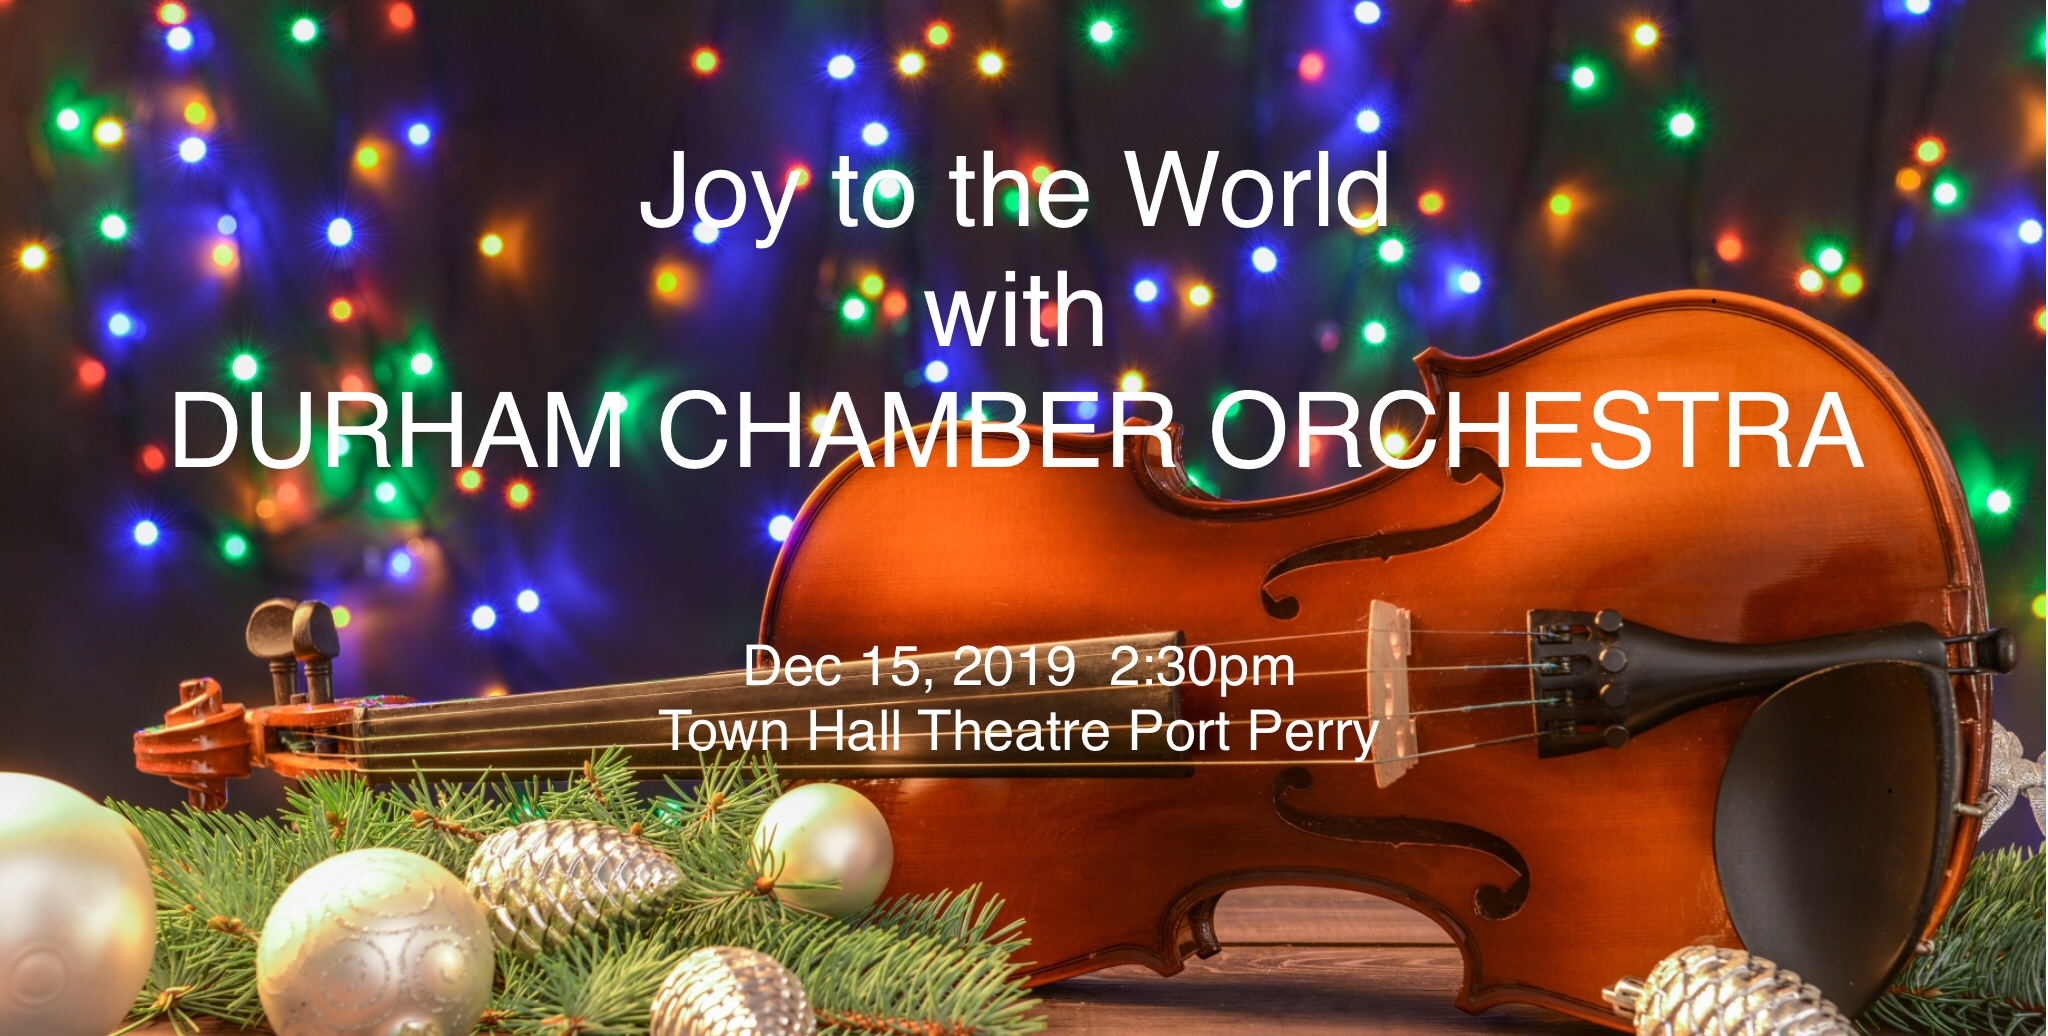 Joy to the World with DURHAM CHAMBER ORCHESTRA